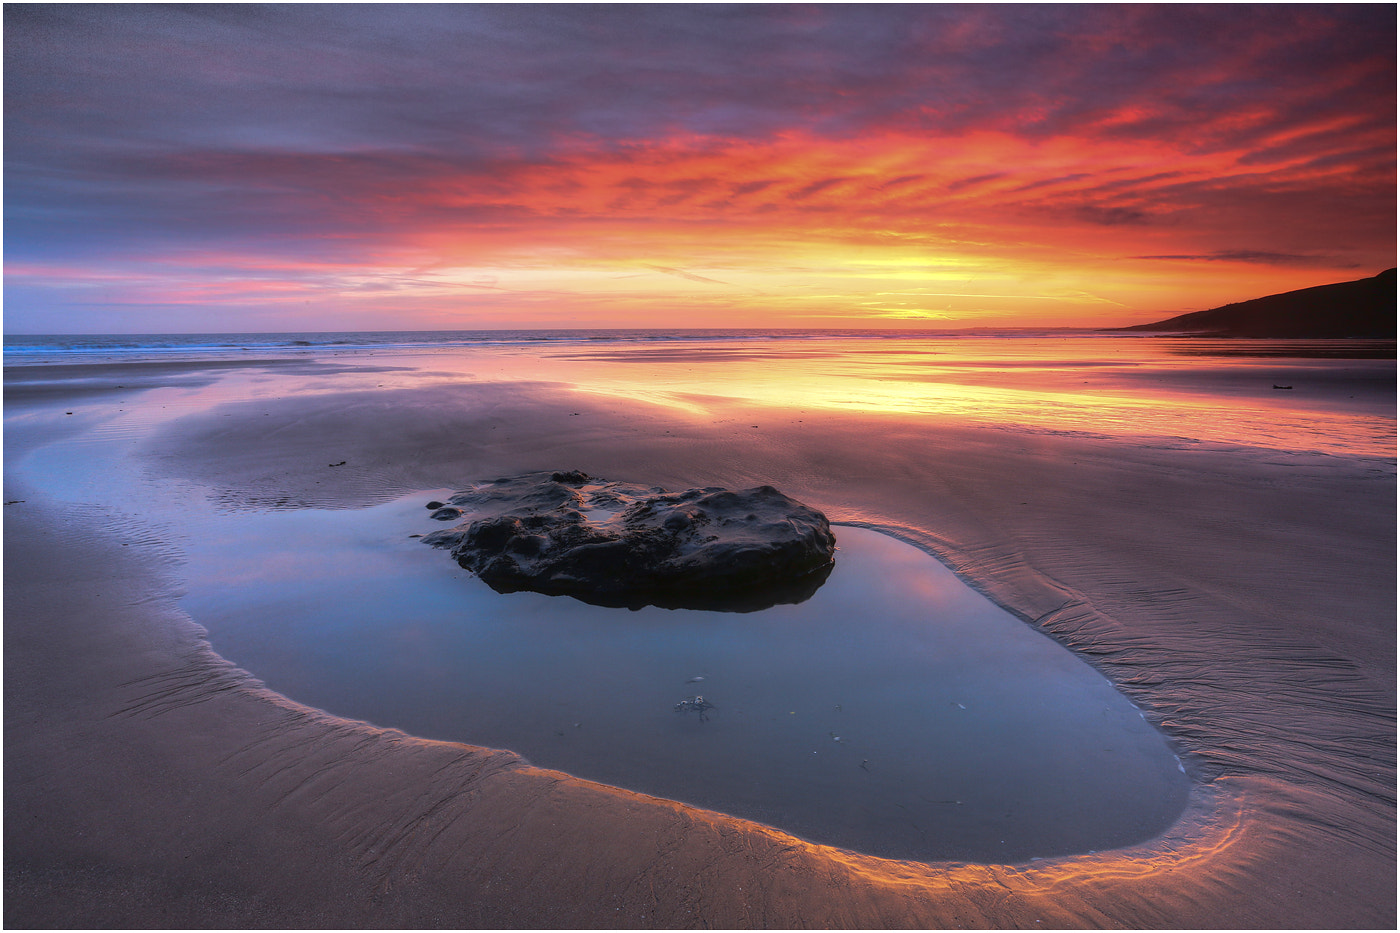 Photograph Dunraven Delight by Alan Coles on 500px